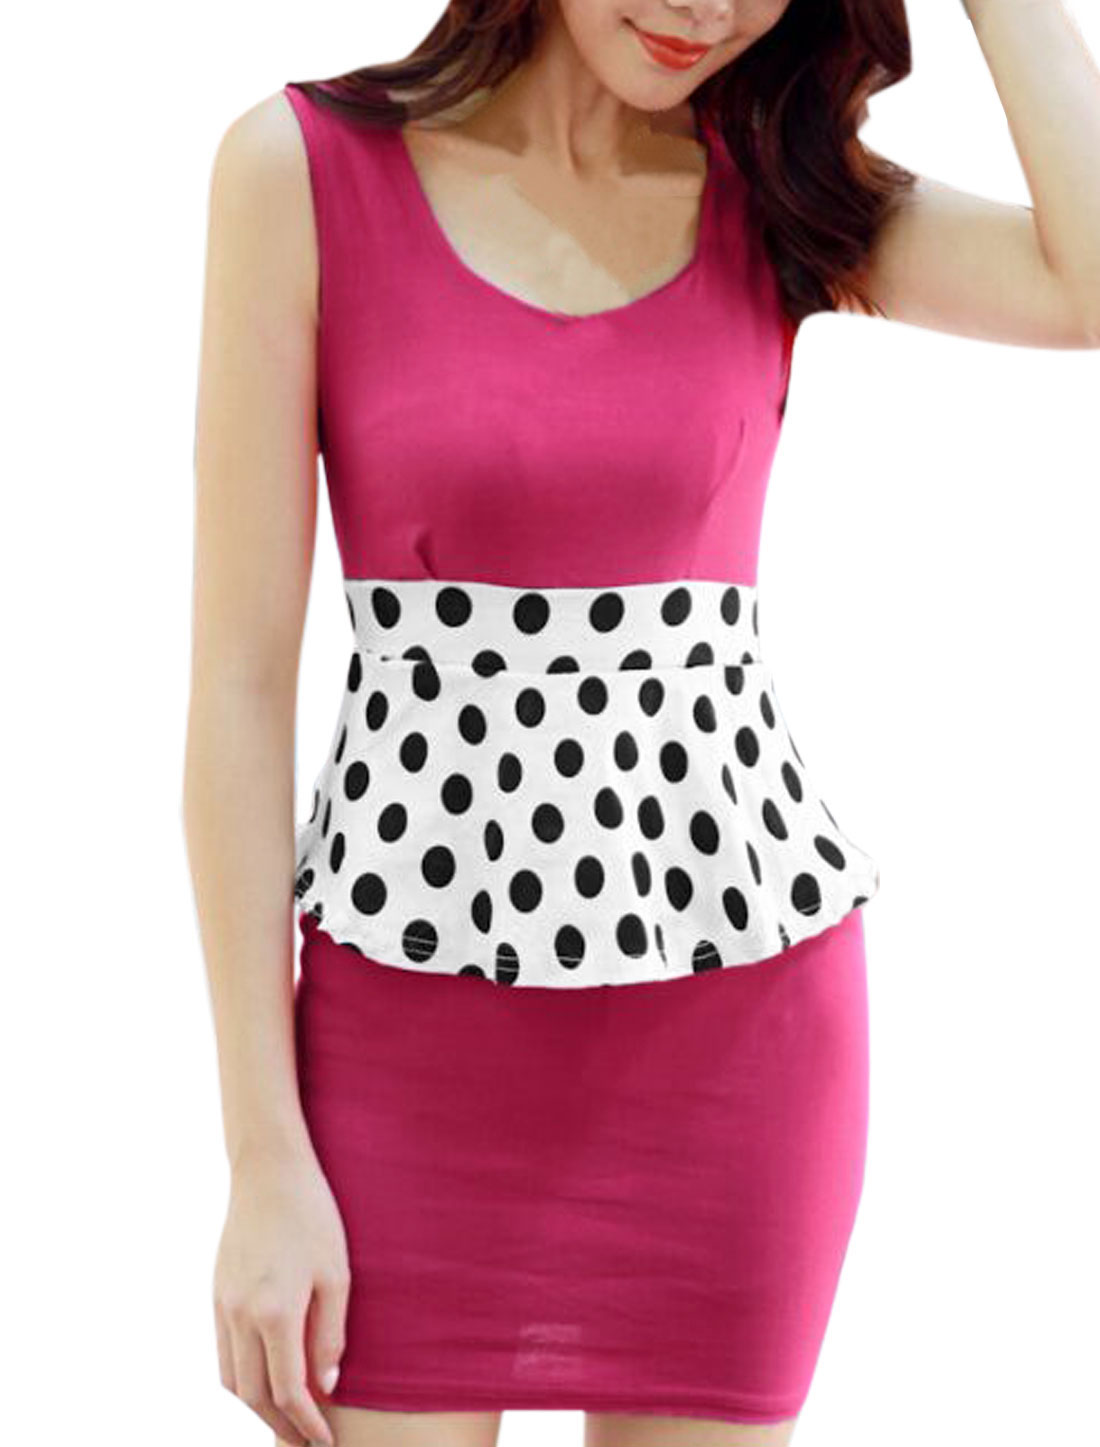 Lady Elegant Elastic Waist Dots Prints Colorblock Peplum Dress Fuchsia XS